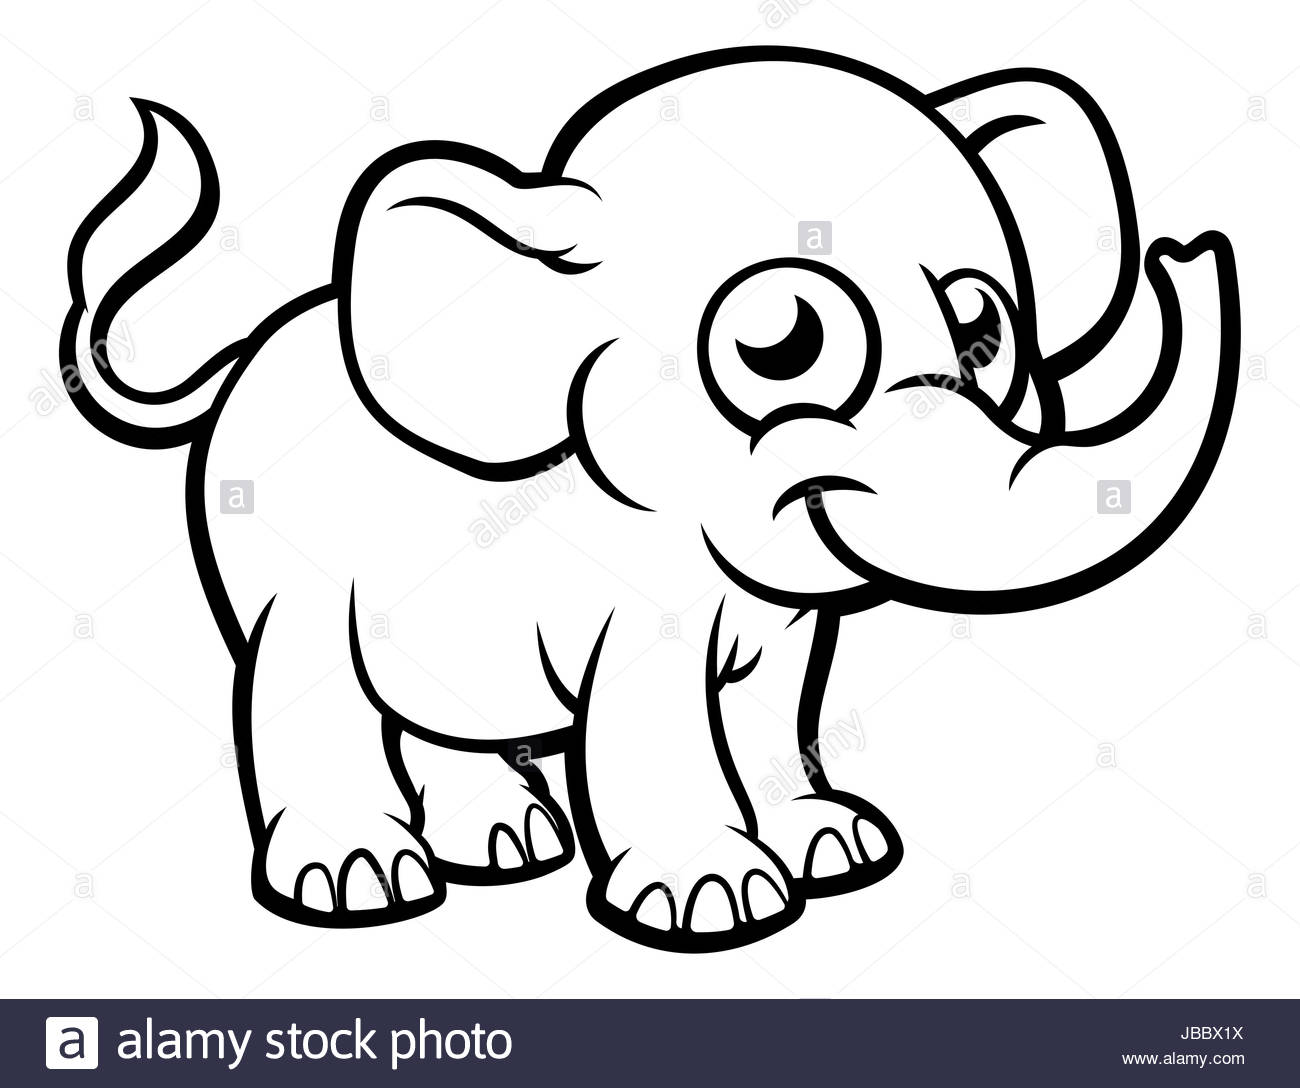 1300x1088 An Elephant Cartoon Character Outline Coloring Illustration Stock